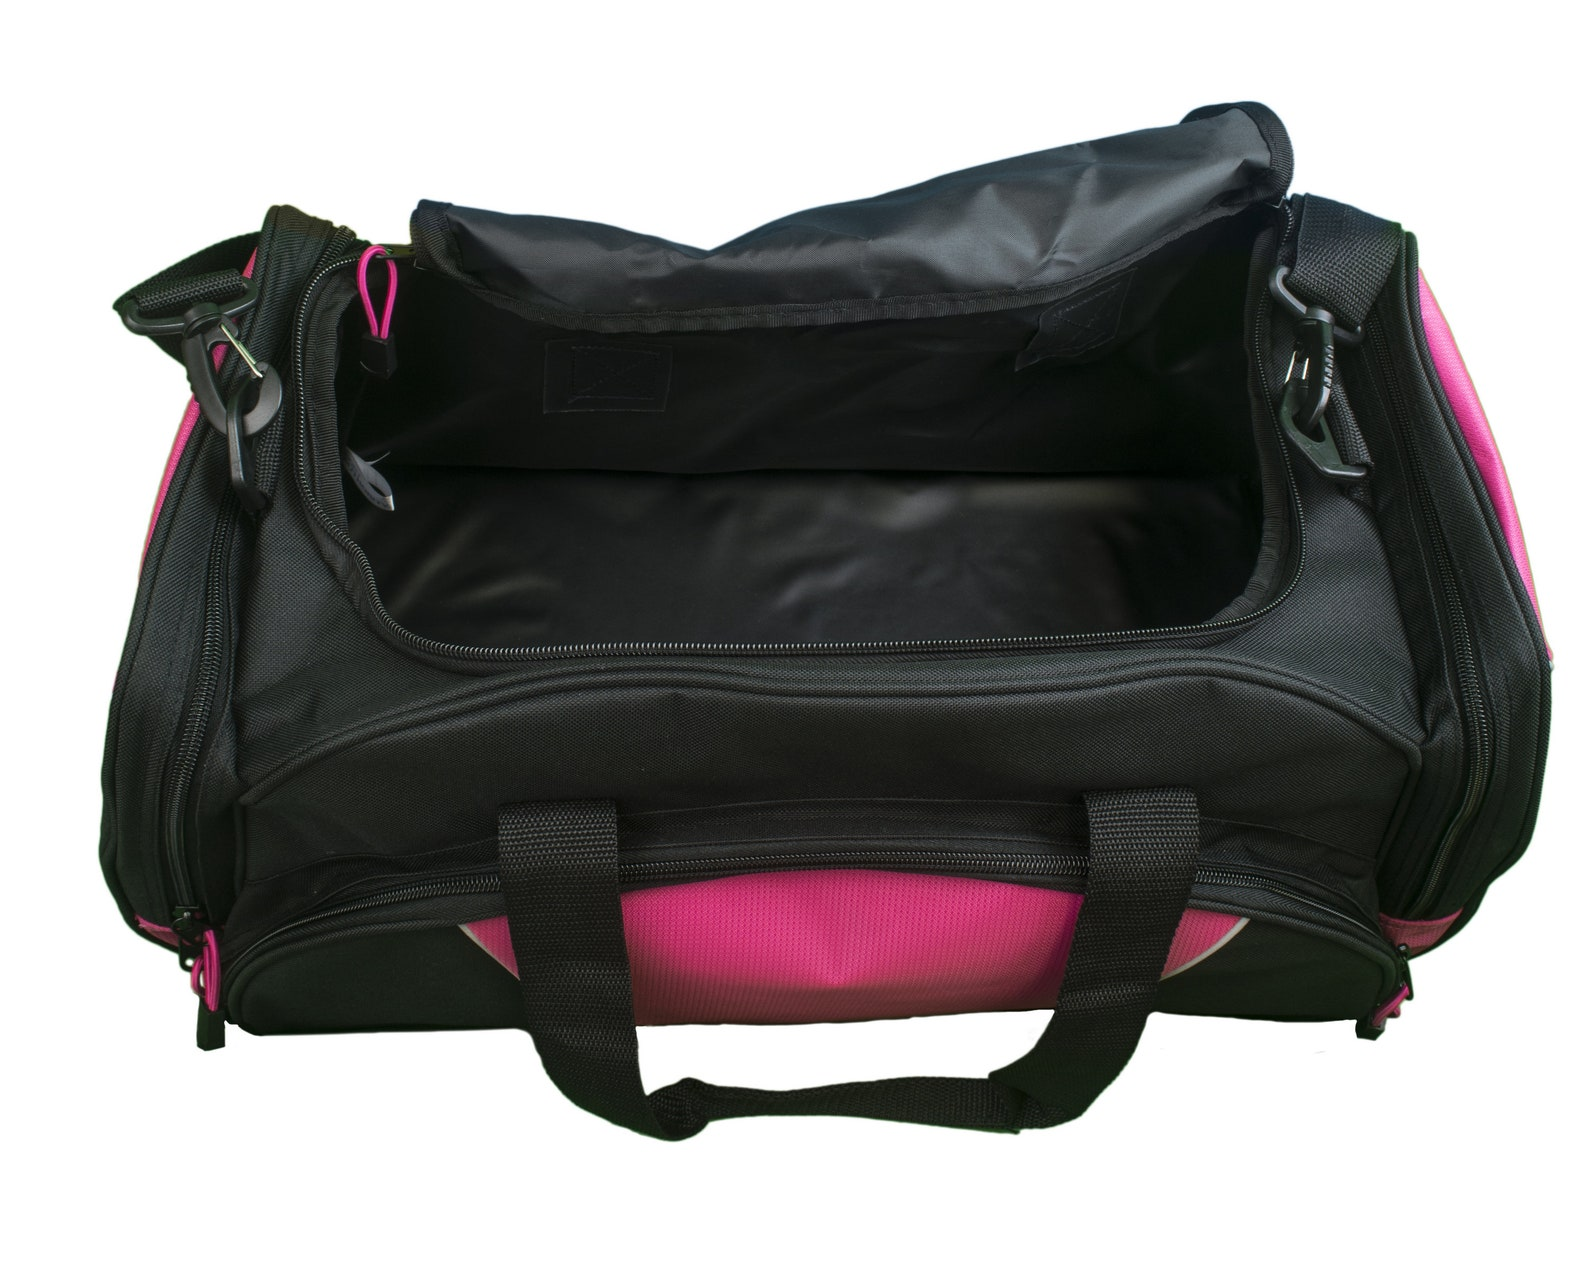 personalized ballet shoes metro gym sport duffel bag with free personalization & free shipping bg91